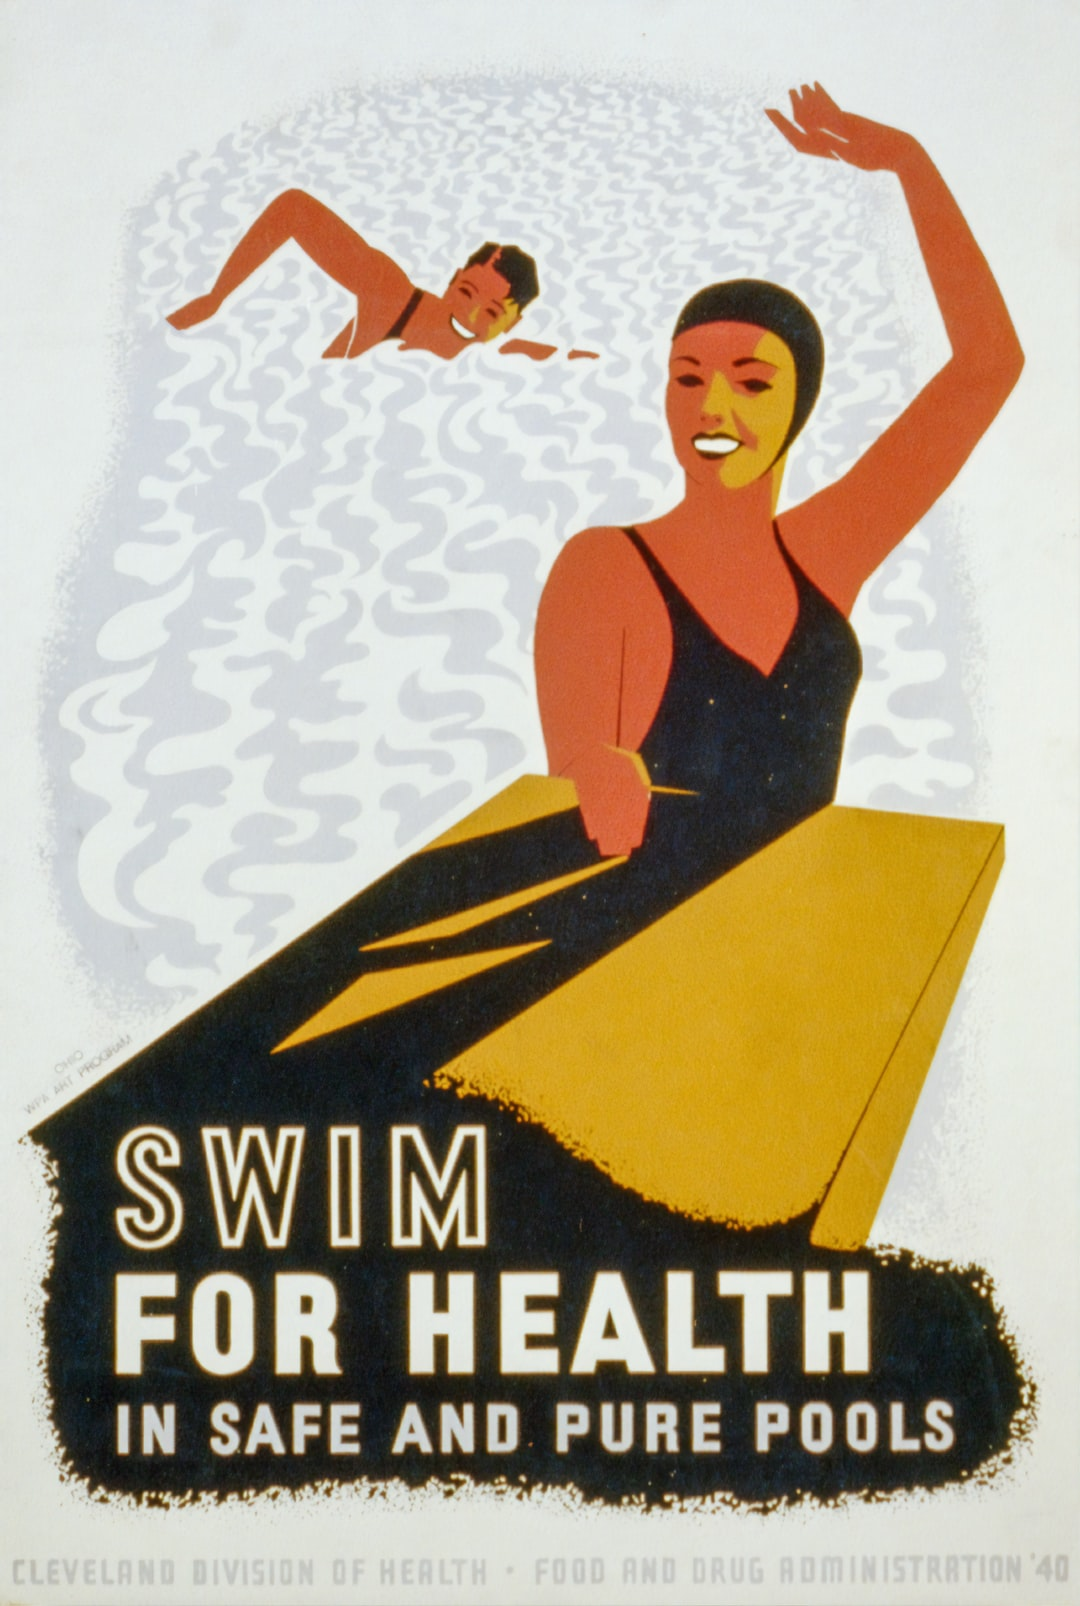 Swim for health in safe and pure pools. Poster for the Ohio : WPA Art Program, [19]40. From the Work Projects Administration Poster Collection. Library of Congress Prints & Photographs Division.  https://www.loc.gov/item/98518824/